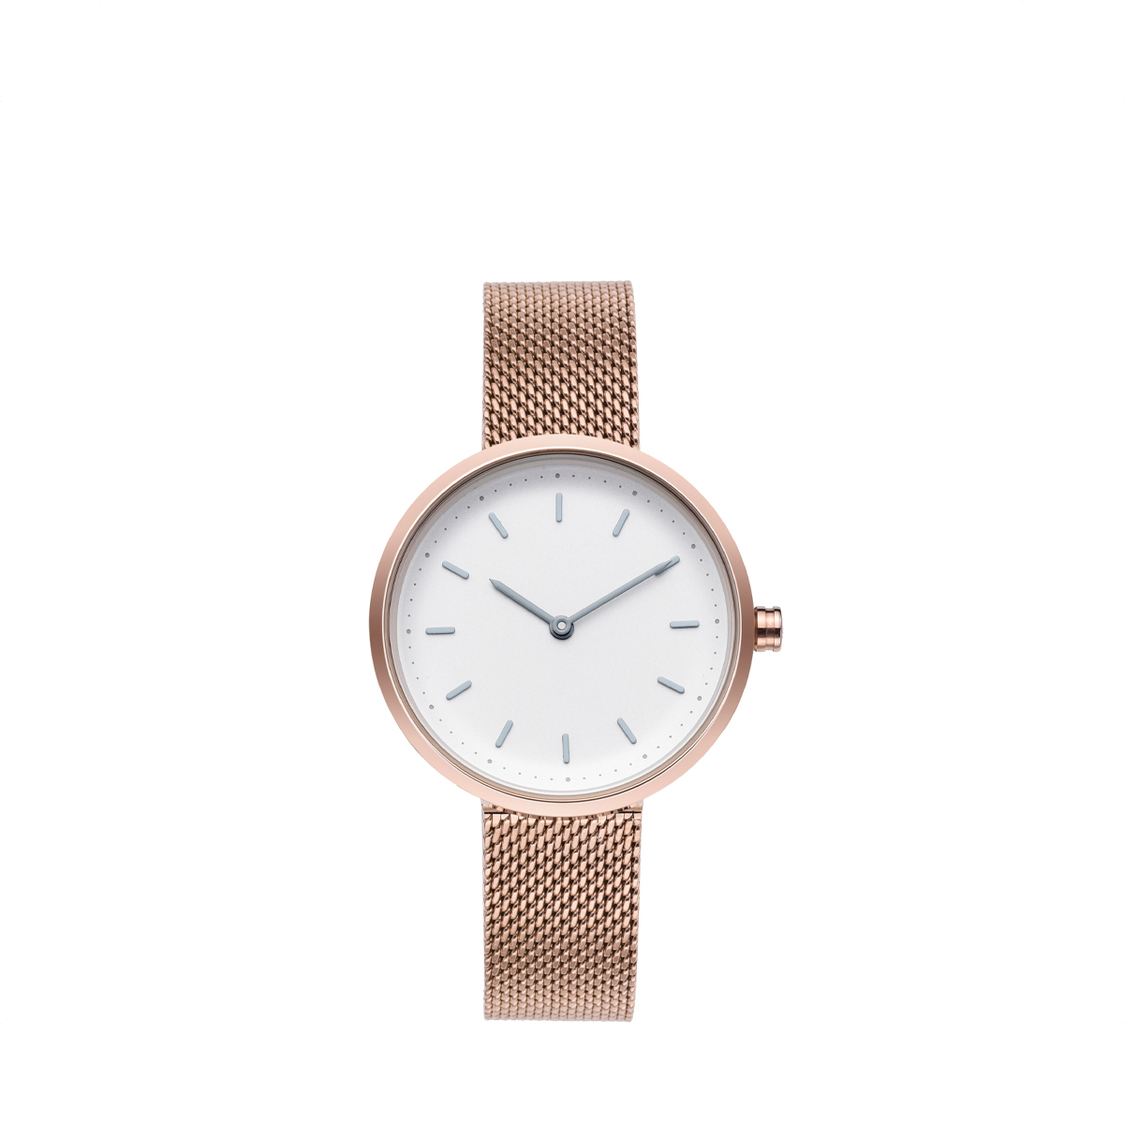 Conc 33 Rose Gold Stainless Steel Mesh